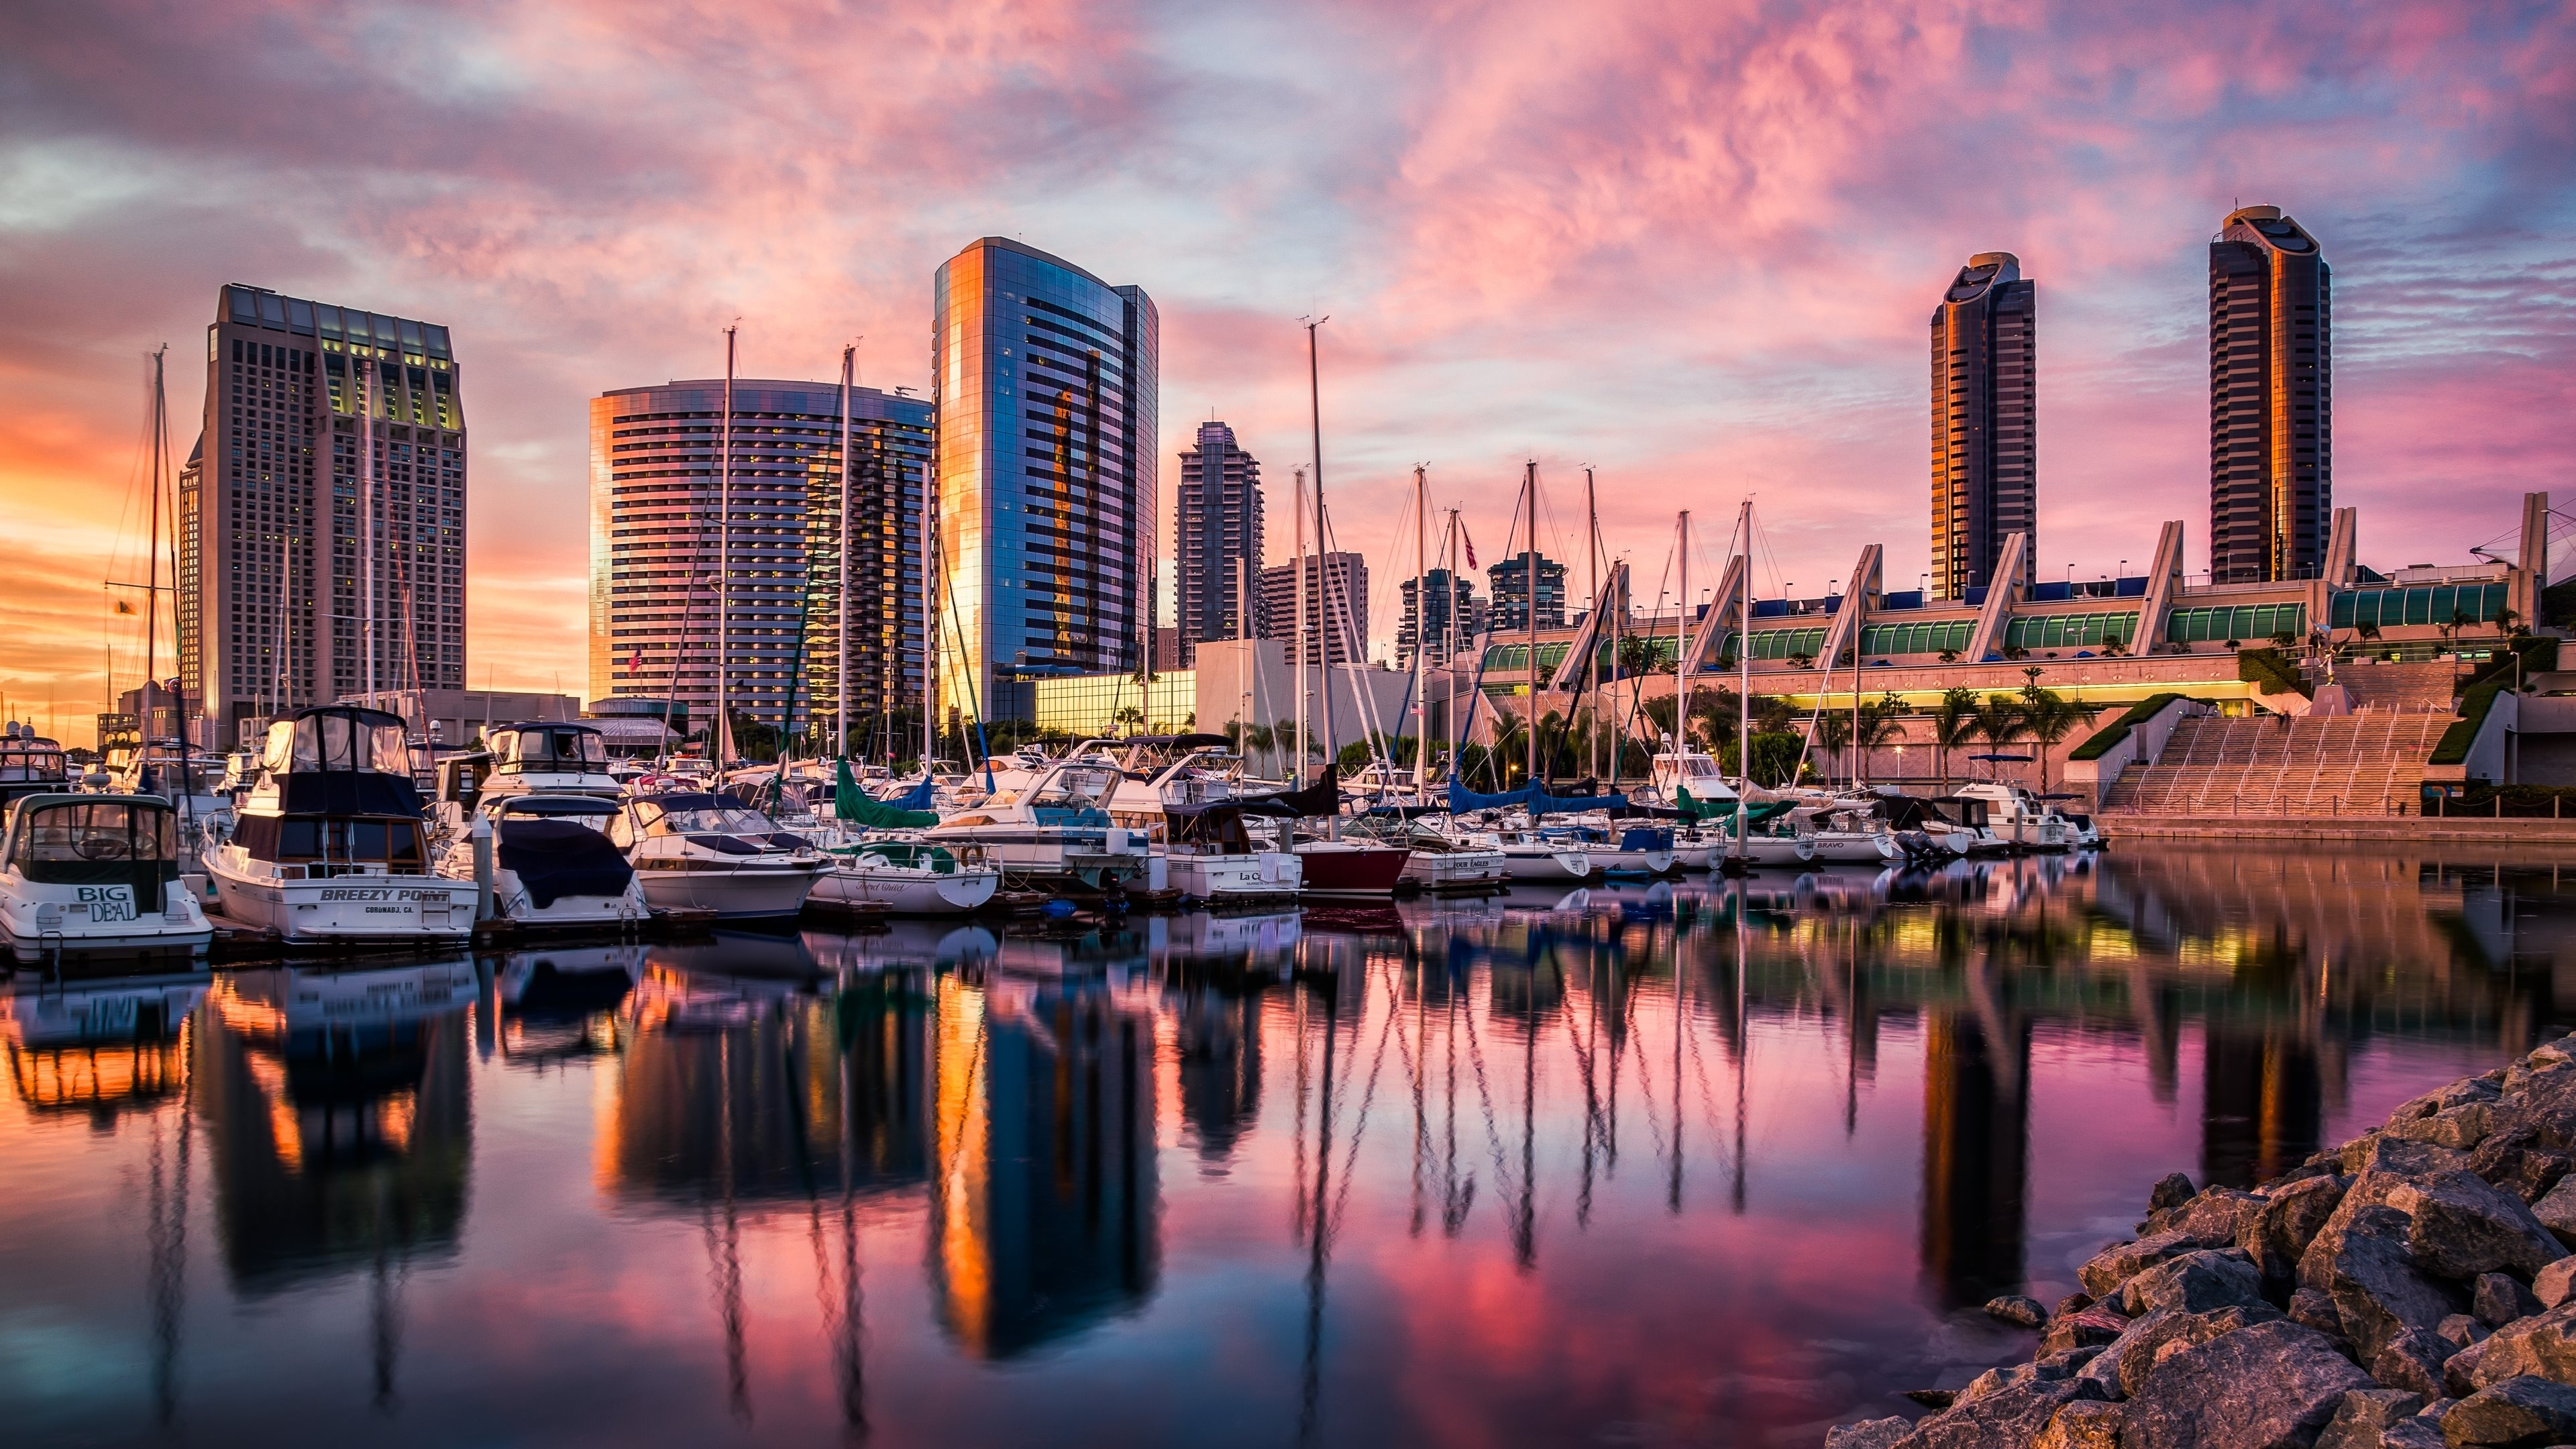 25 san diego hd wallpapers | background images - wallpaper abyss